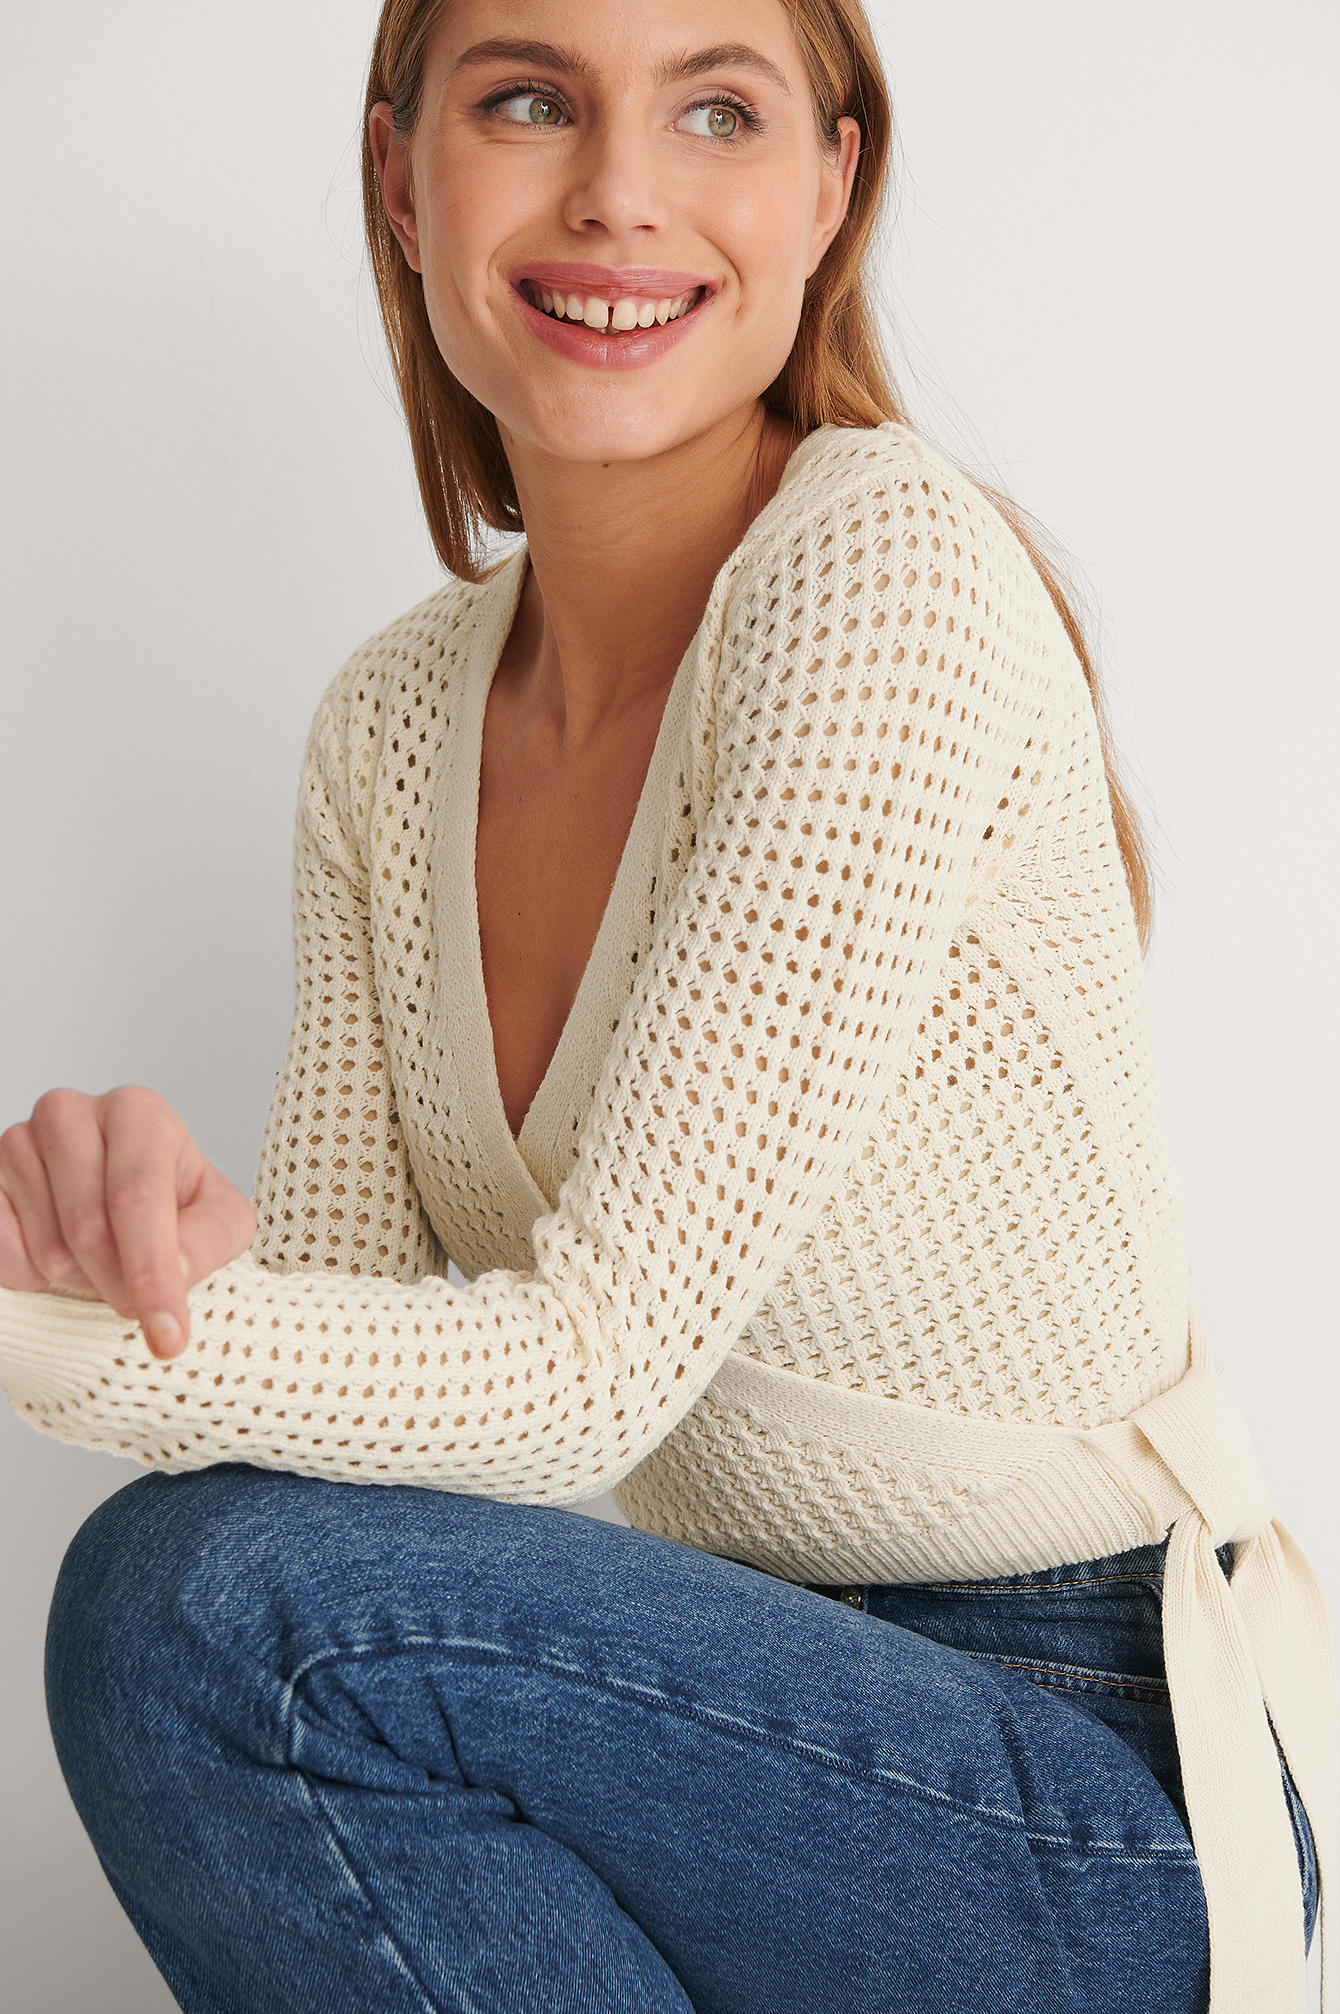 Light Beige Overlap Hole Knitted Sweater